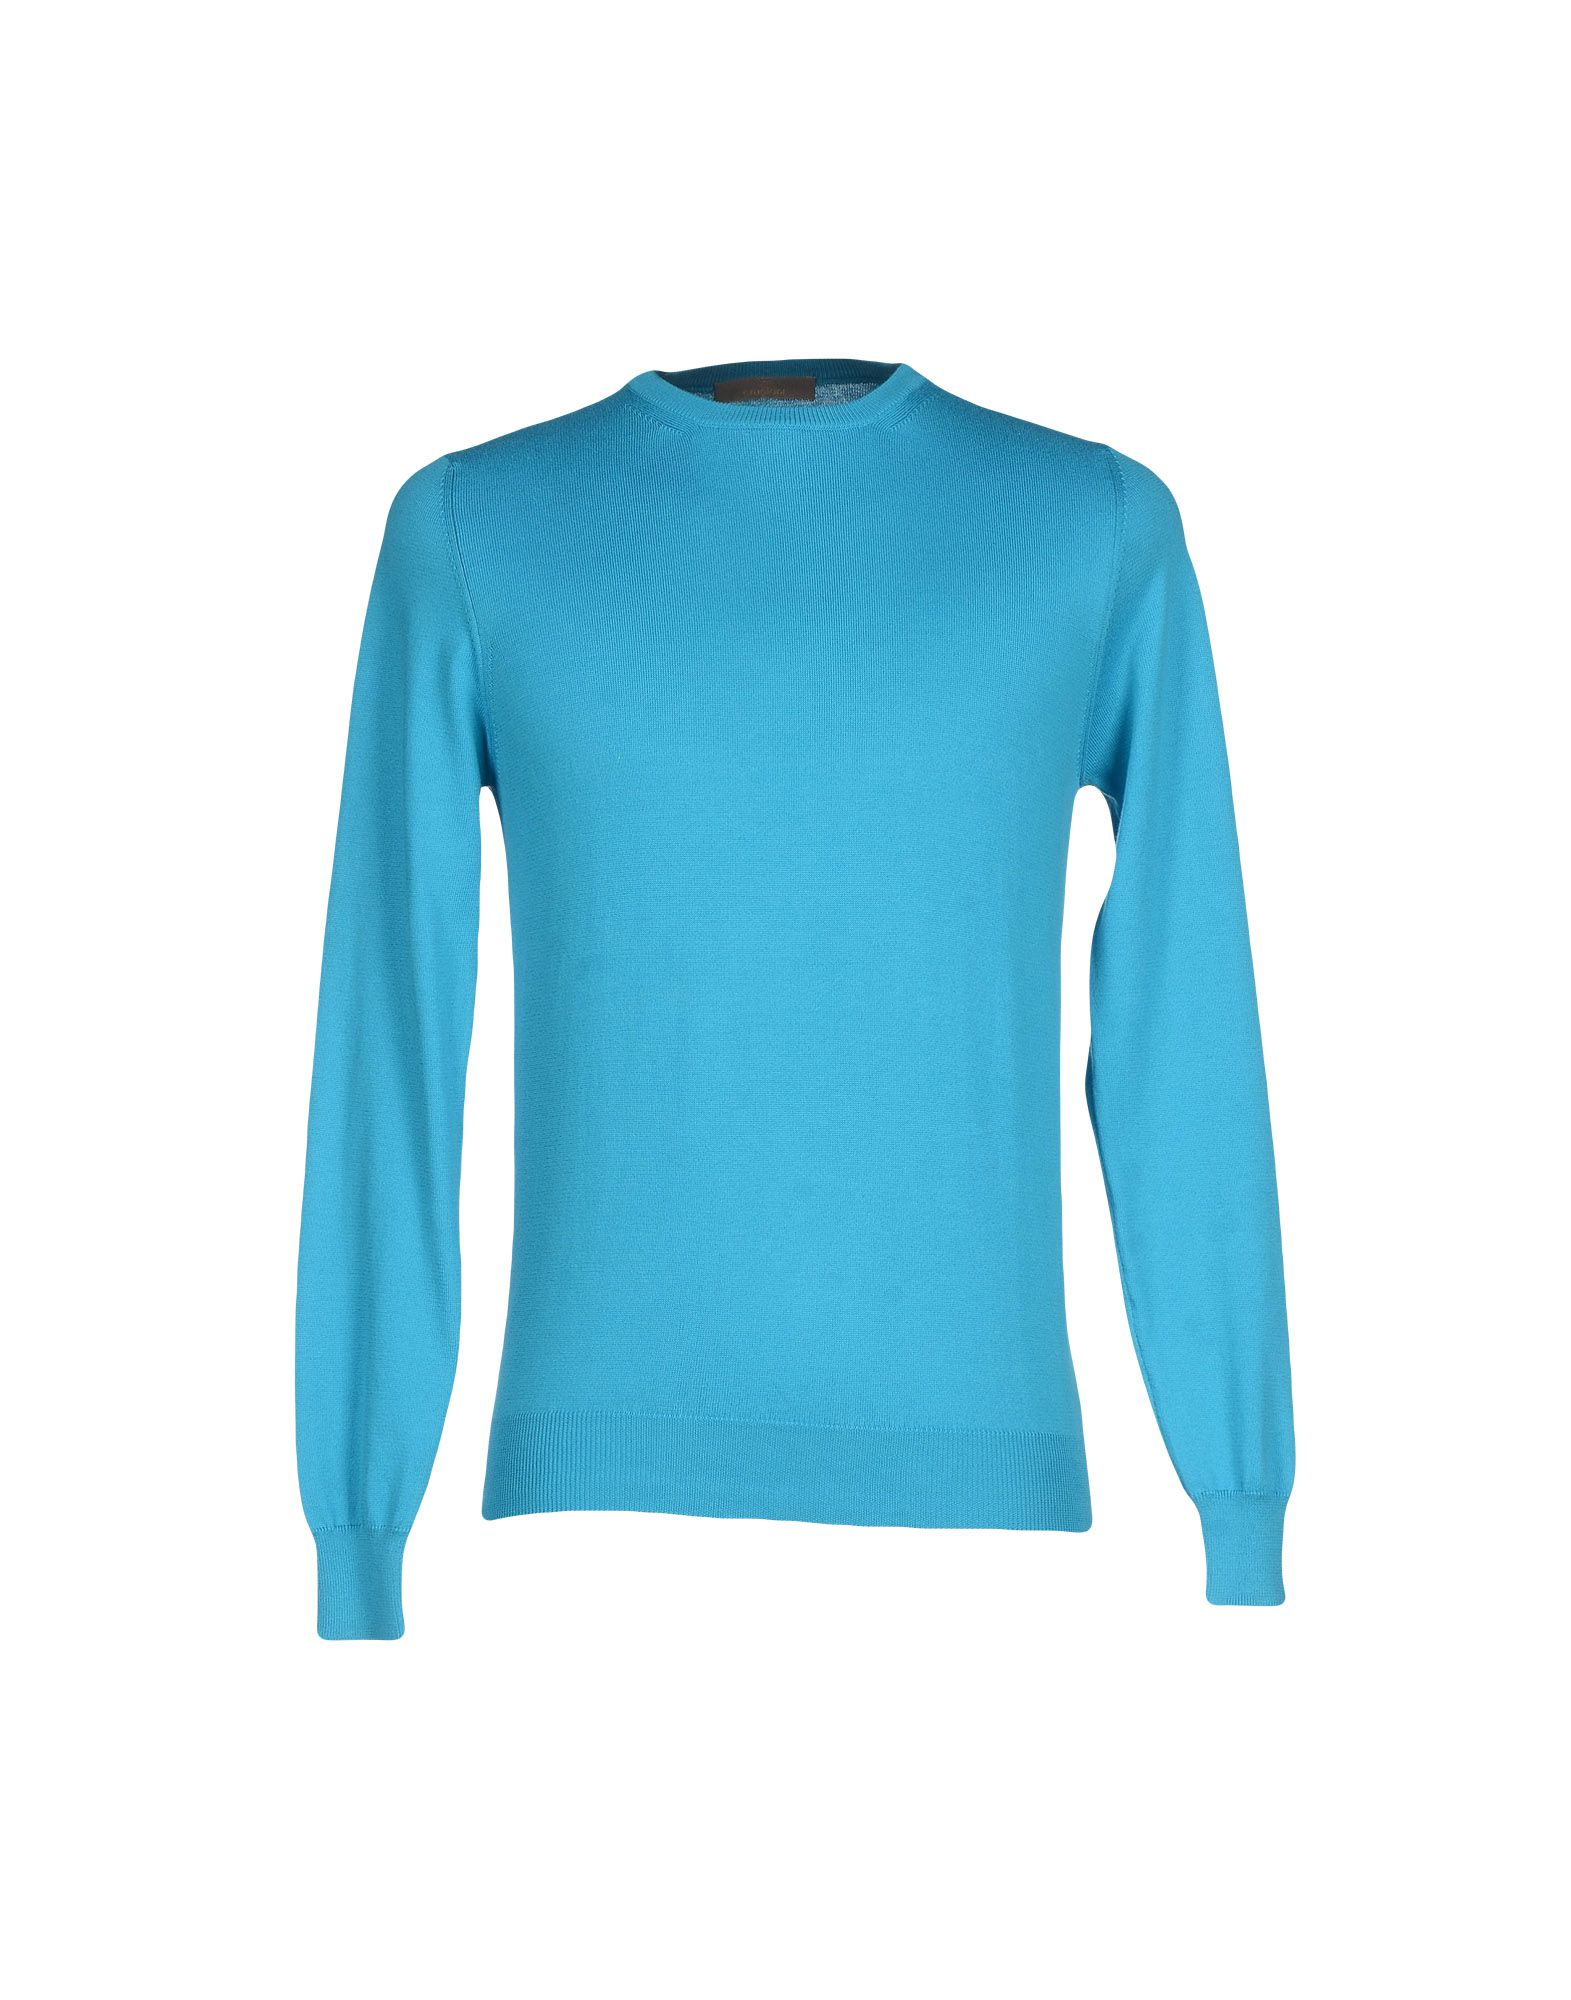 Cruciani Sweater in Blue for Men